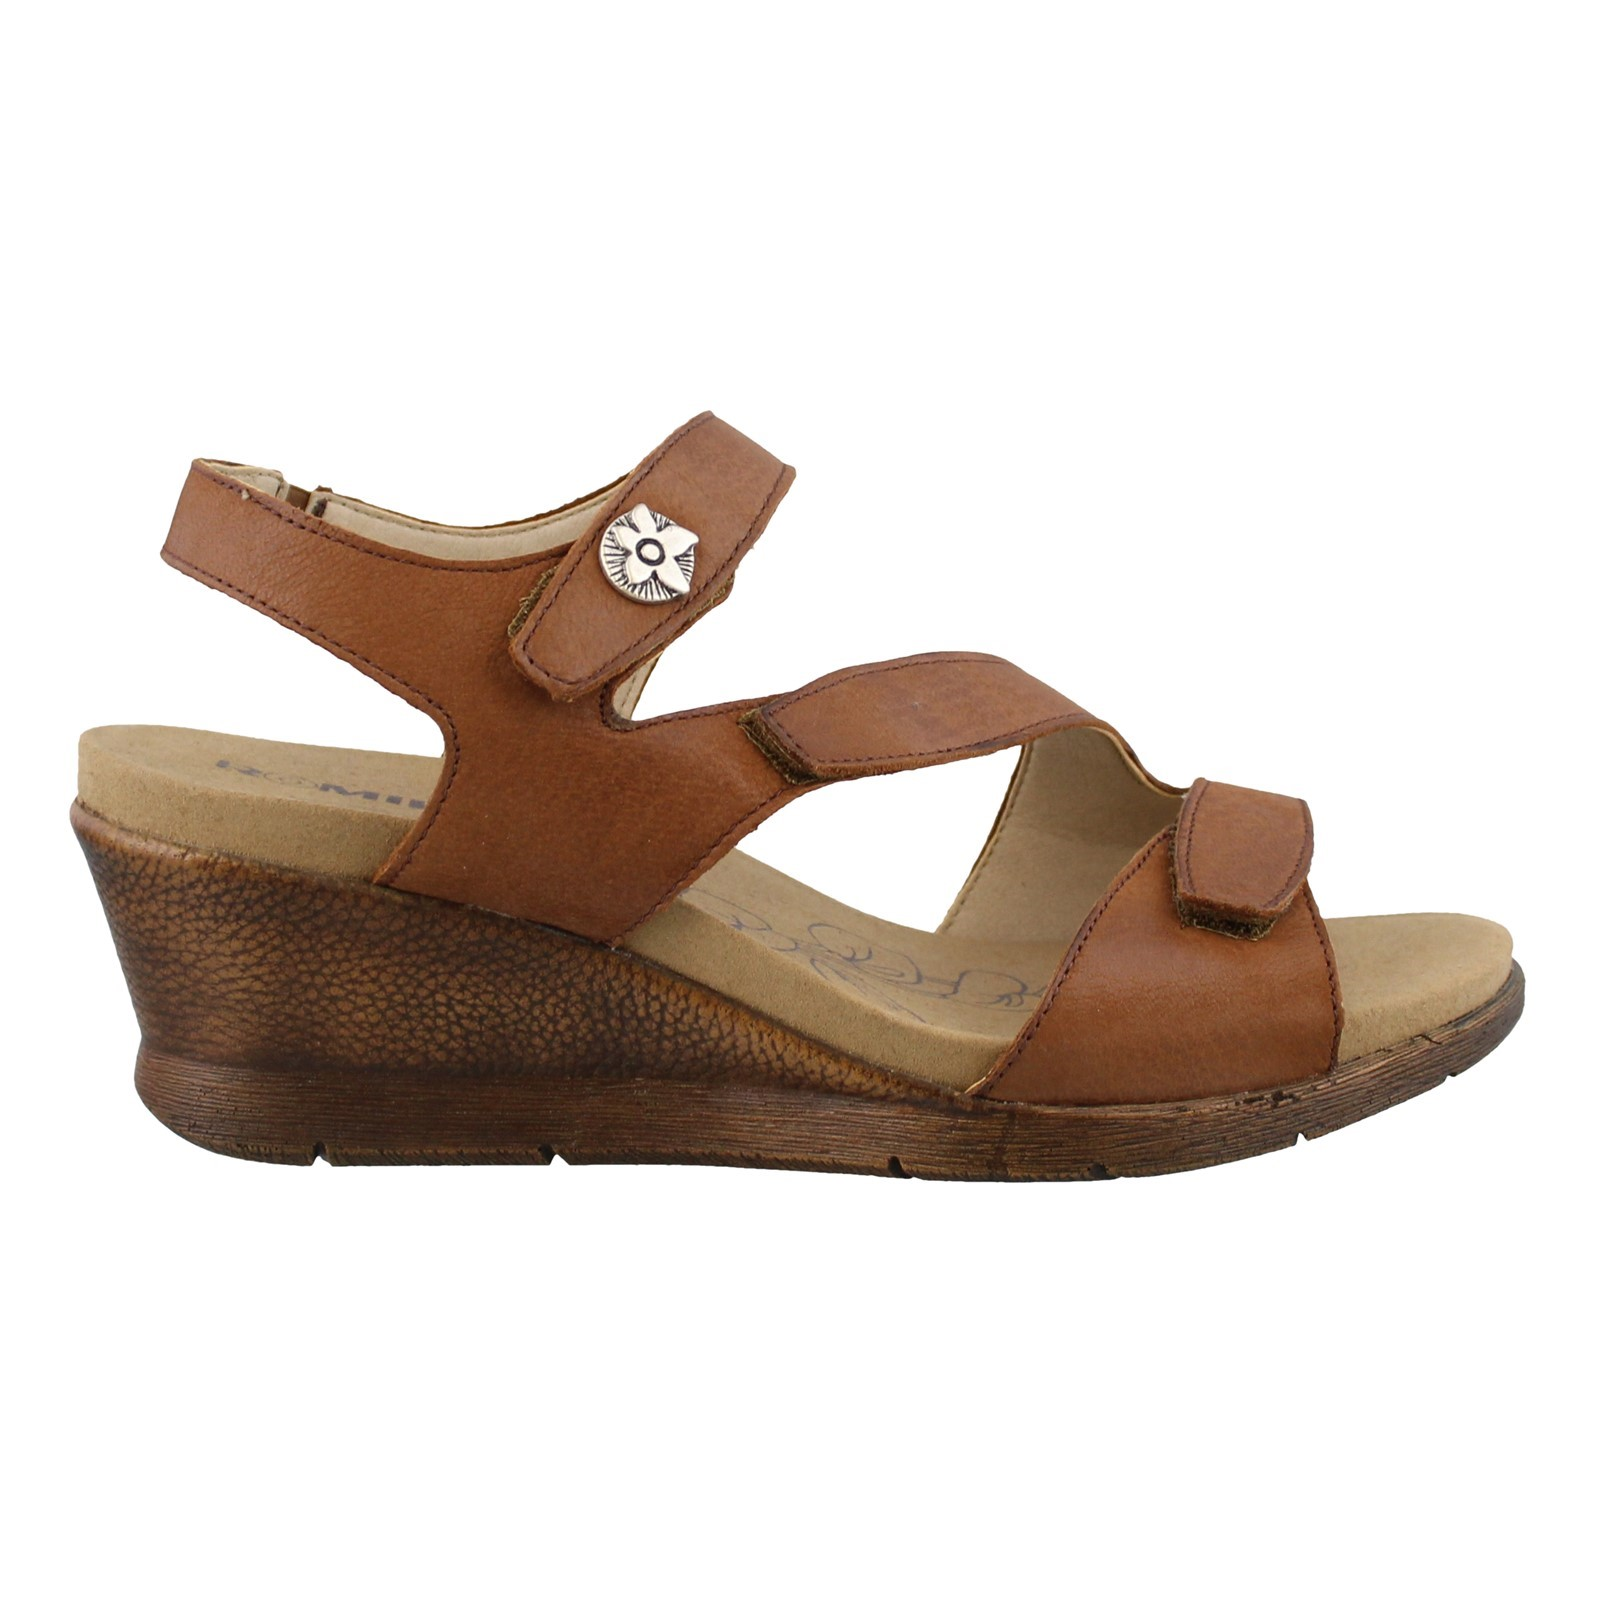 Women's Romika, Nevis 07 Low Wedge Heels